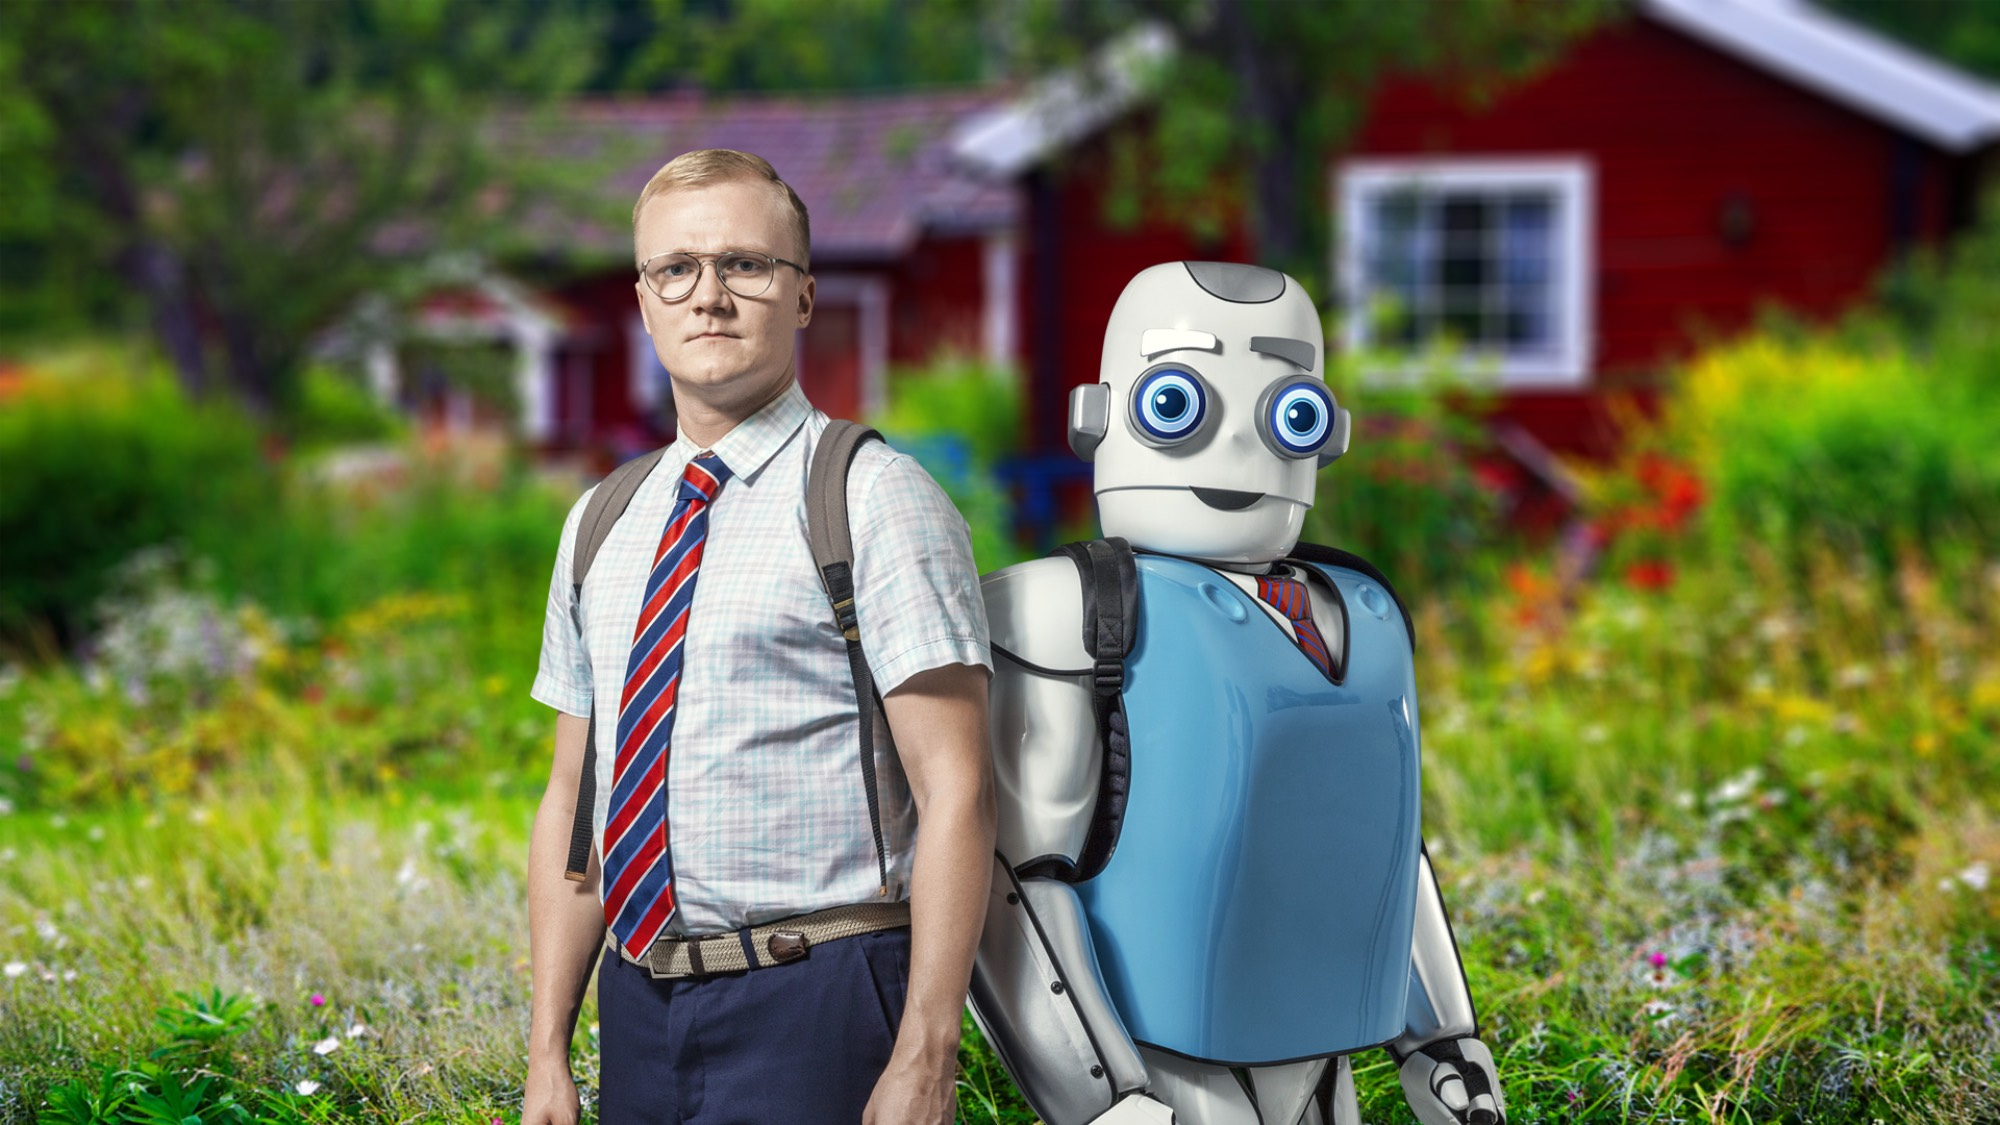 A man and robot standing outside